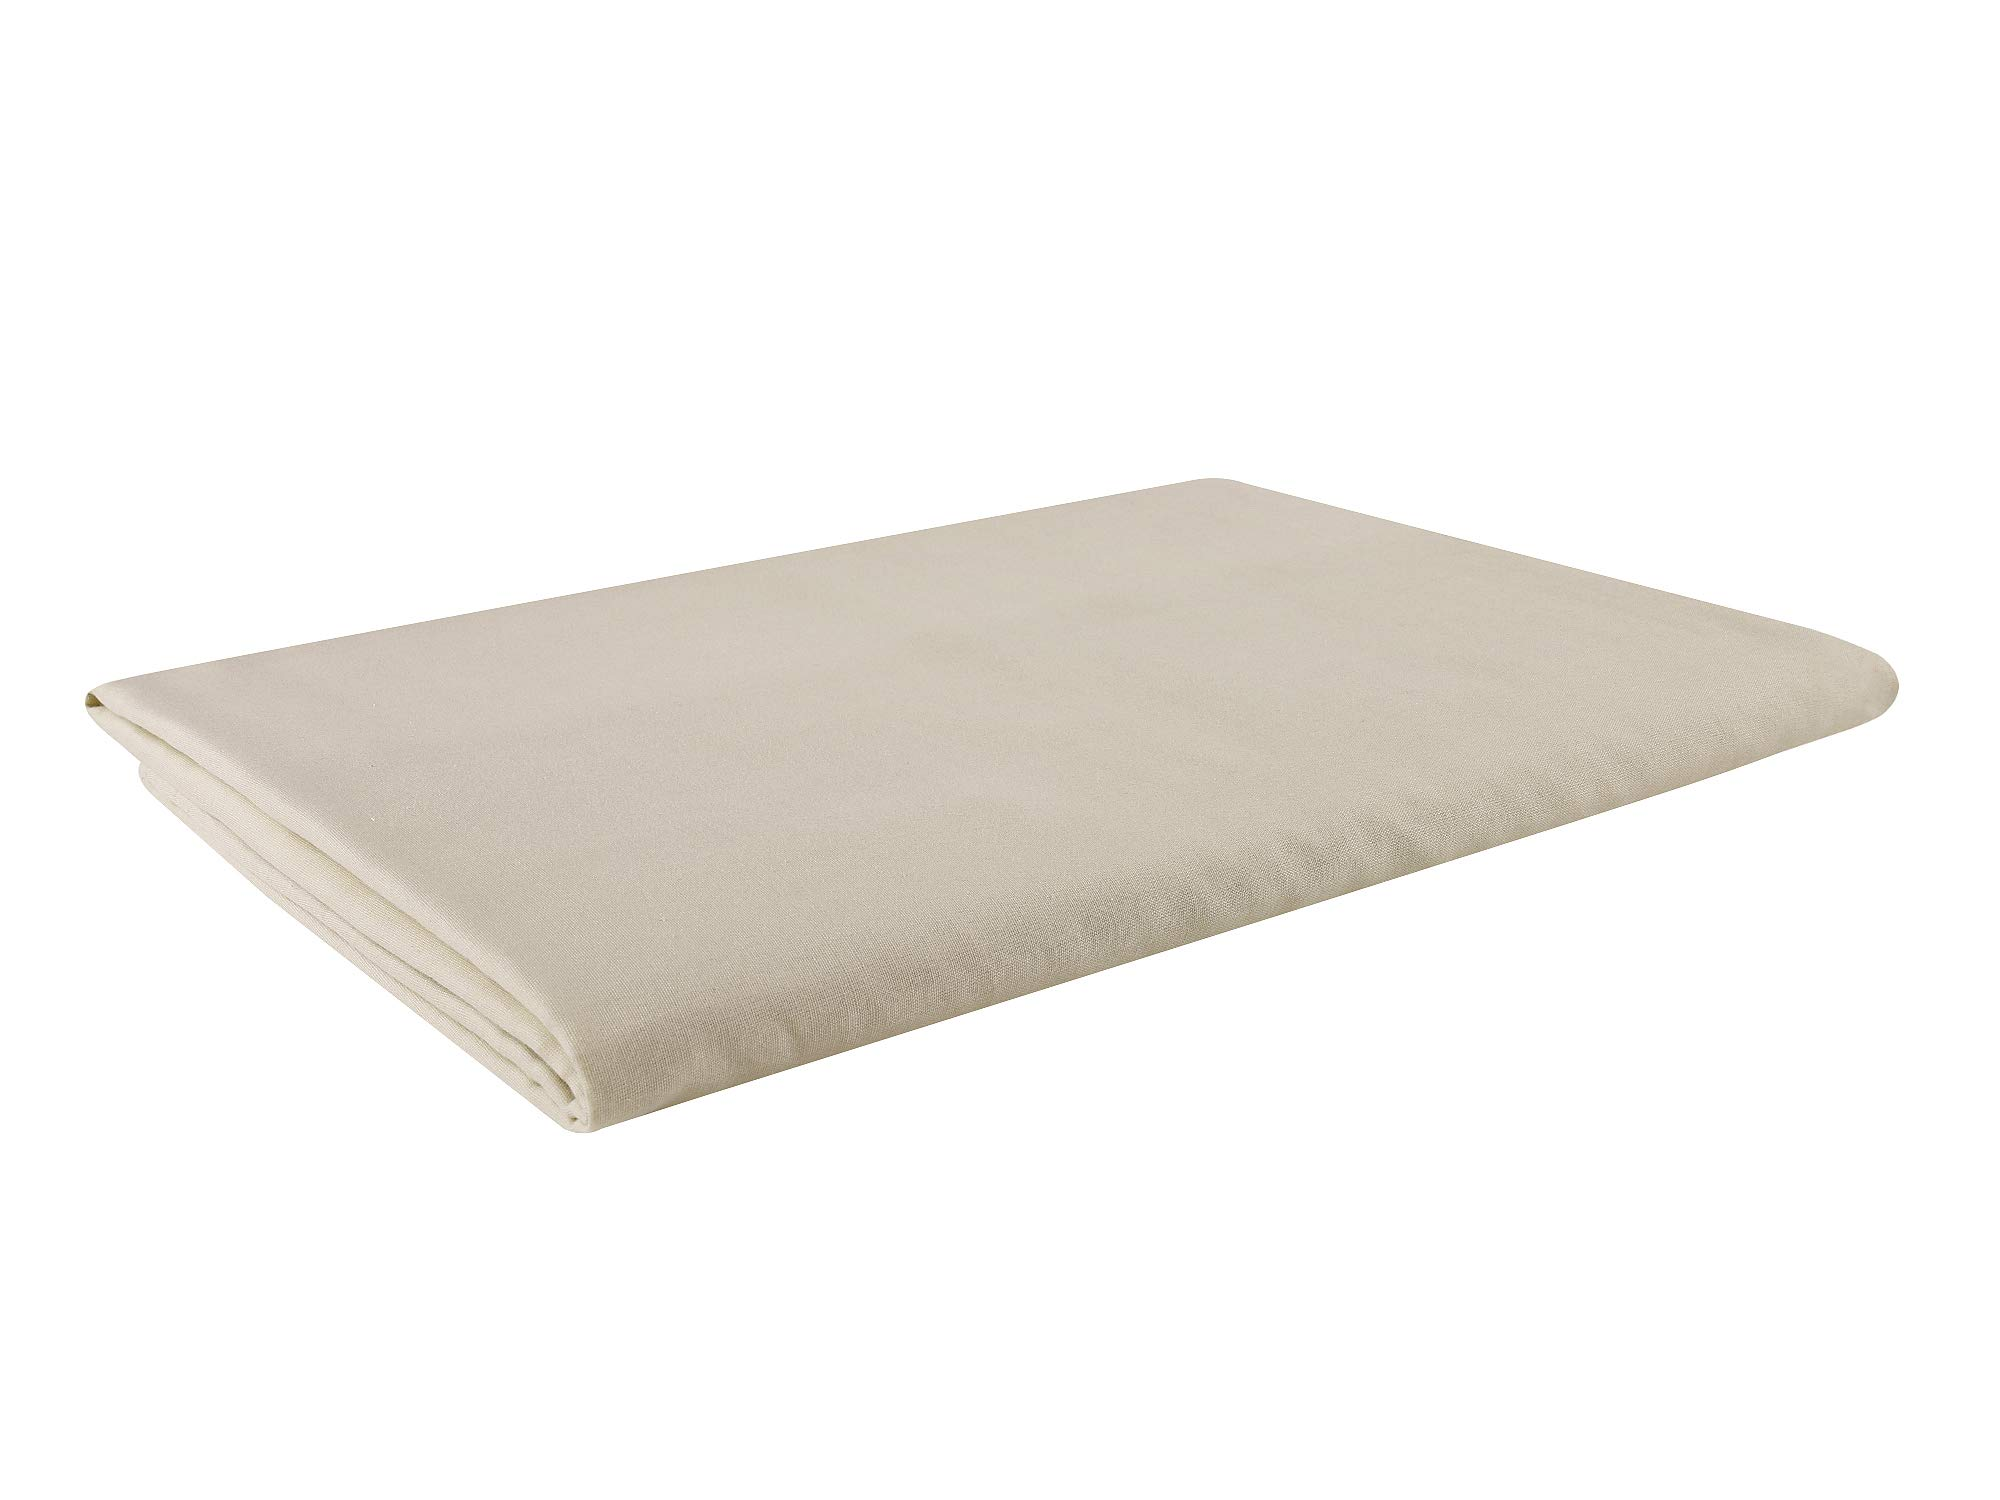 GYS Ultra Soft and Lightweight 100% Organic Cotton Hospital/Home Blanket (Twin Size, 30 Ounce, 58.3''x82.7''), Summer Quilt with 5 Layers of Organic Cotton, Flaxen by GYS (Image #2)